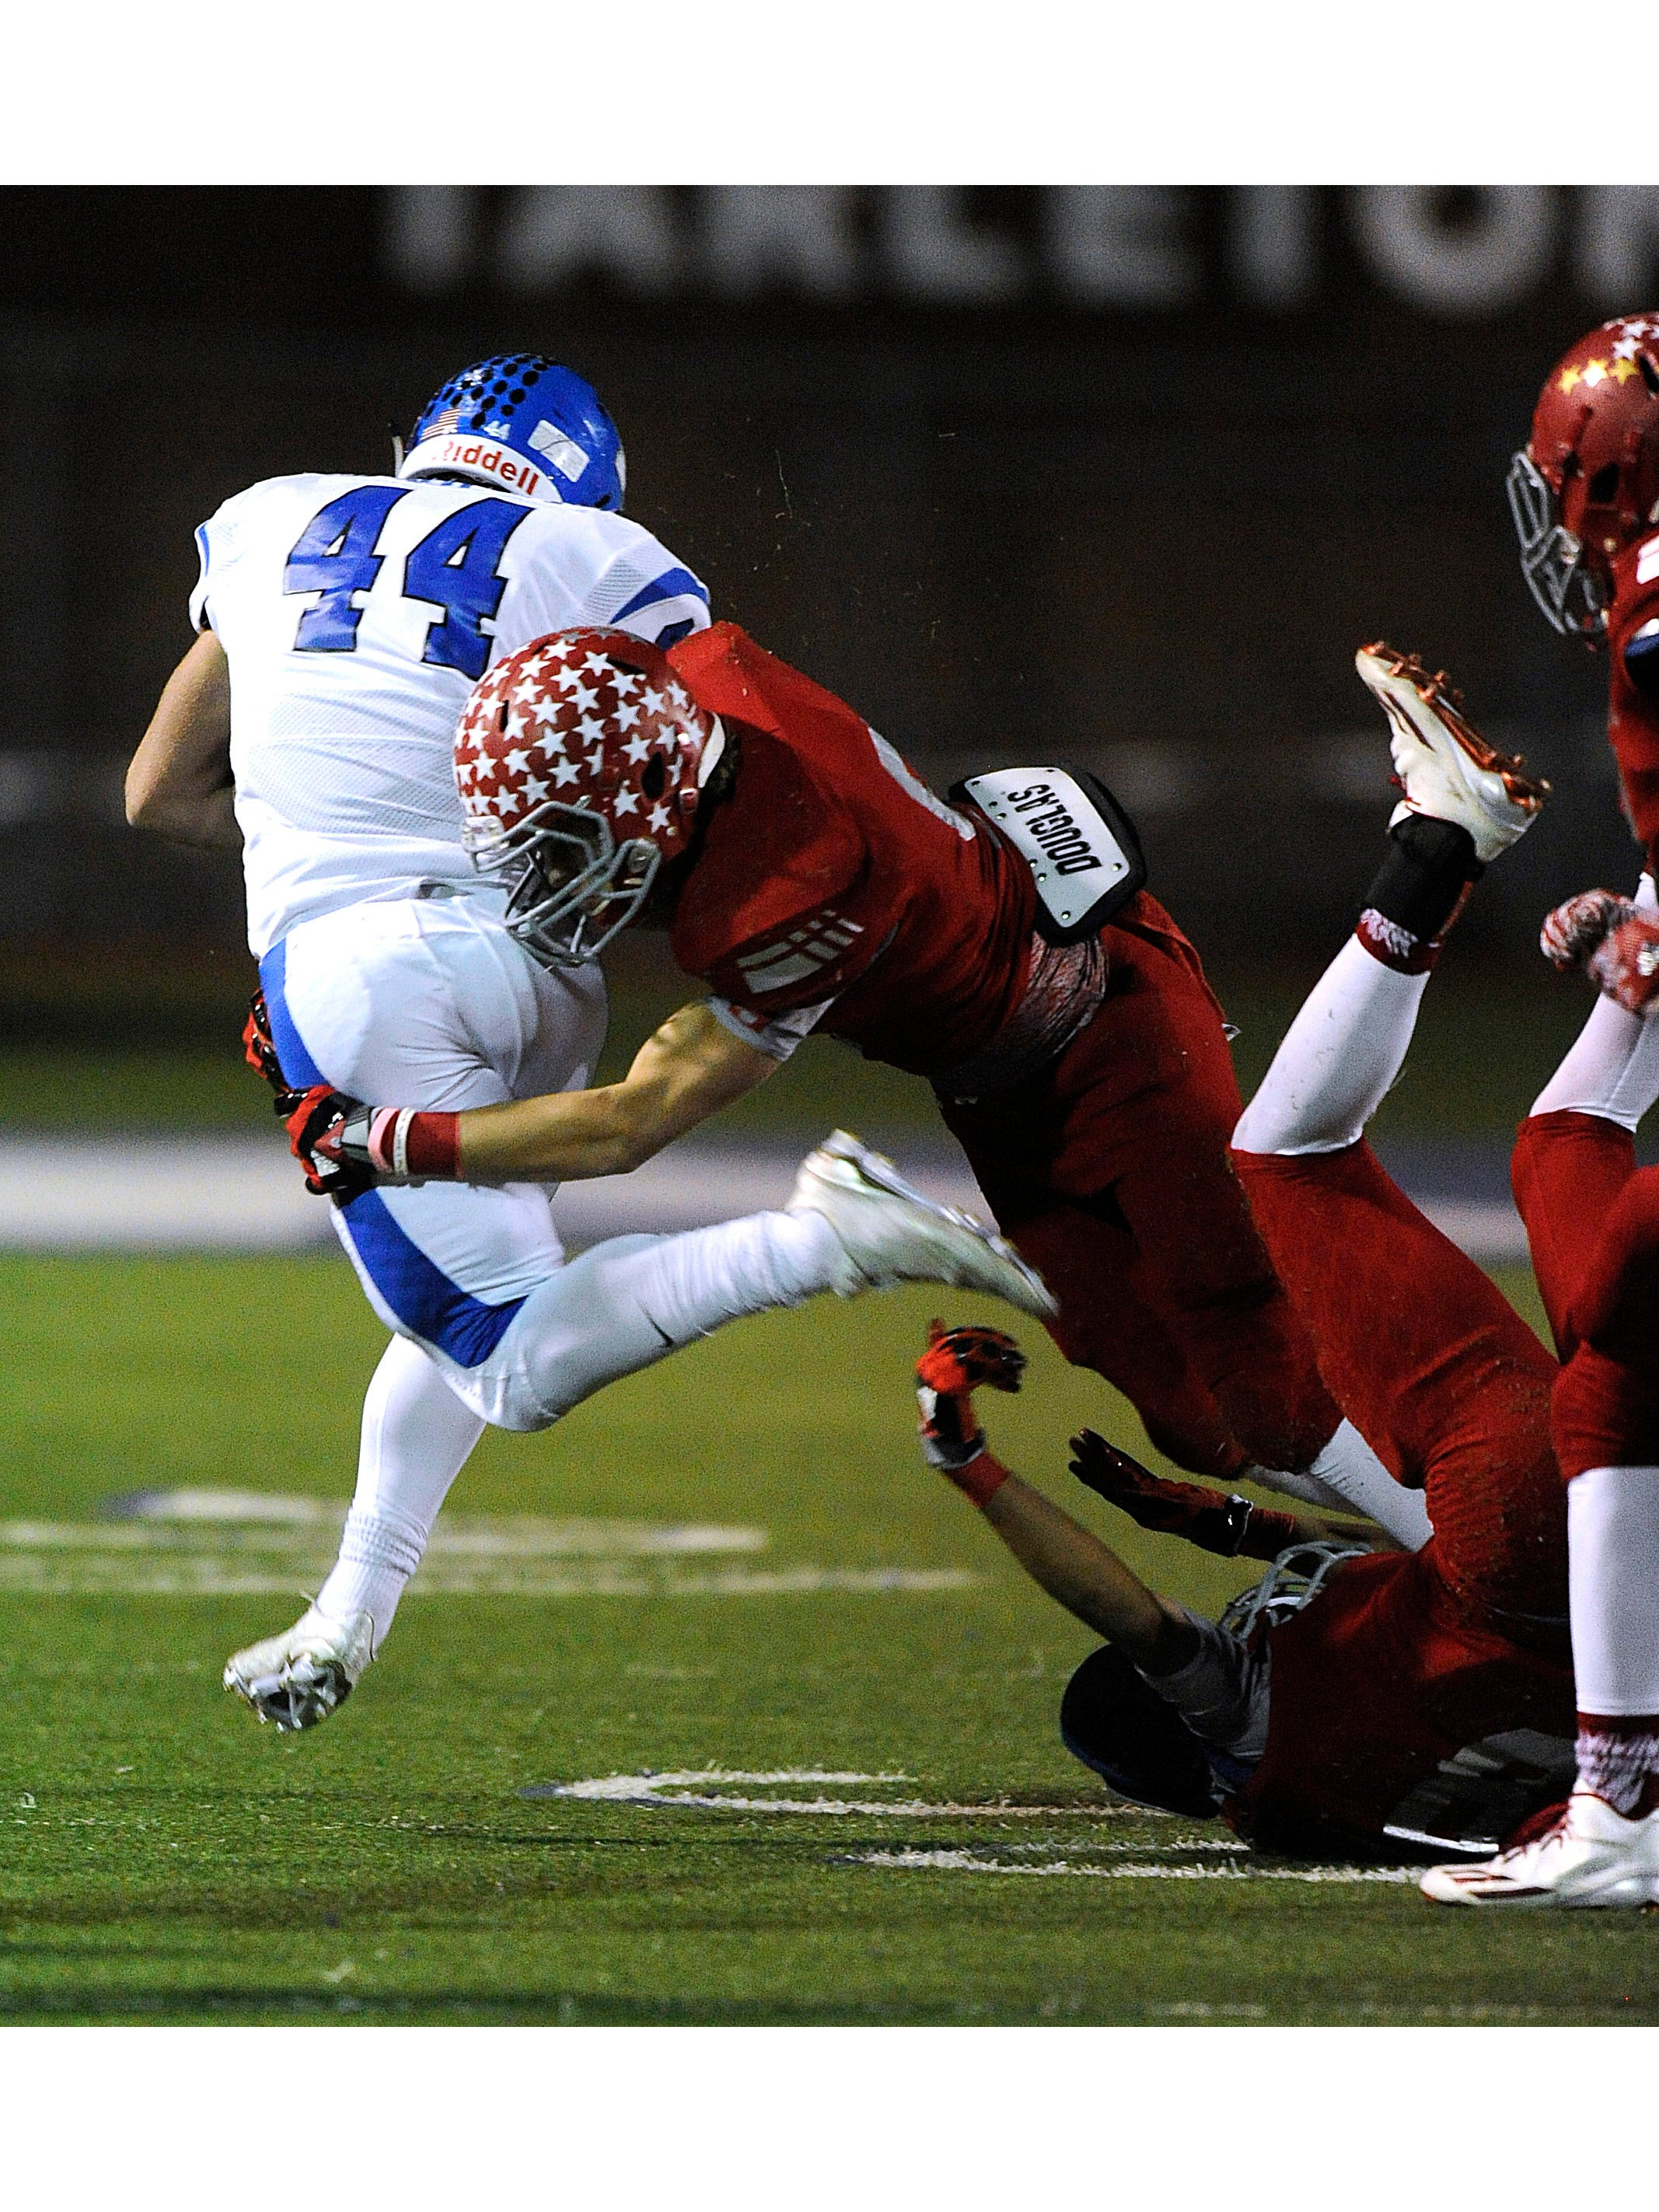 sweetwater linebacker hunter mobley 9 hits krum running